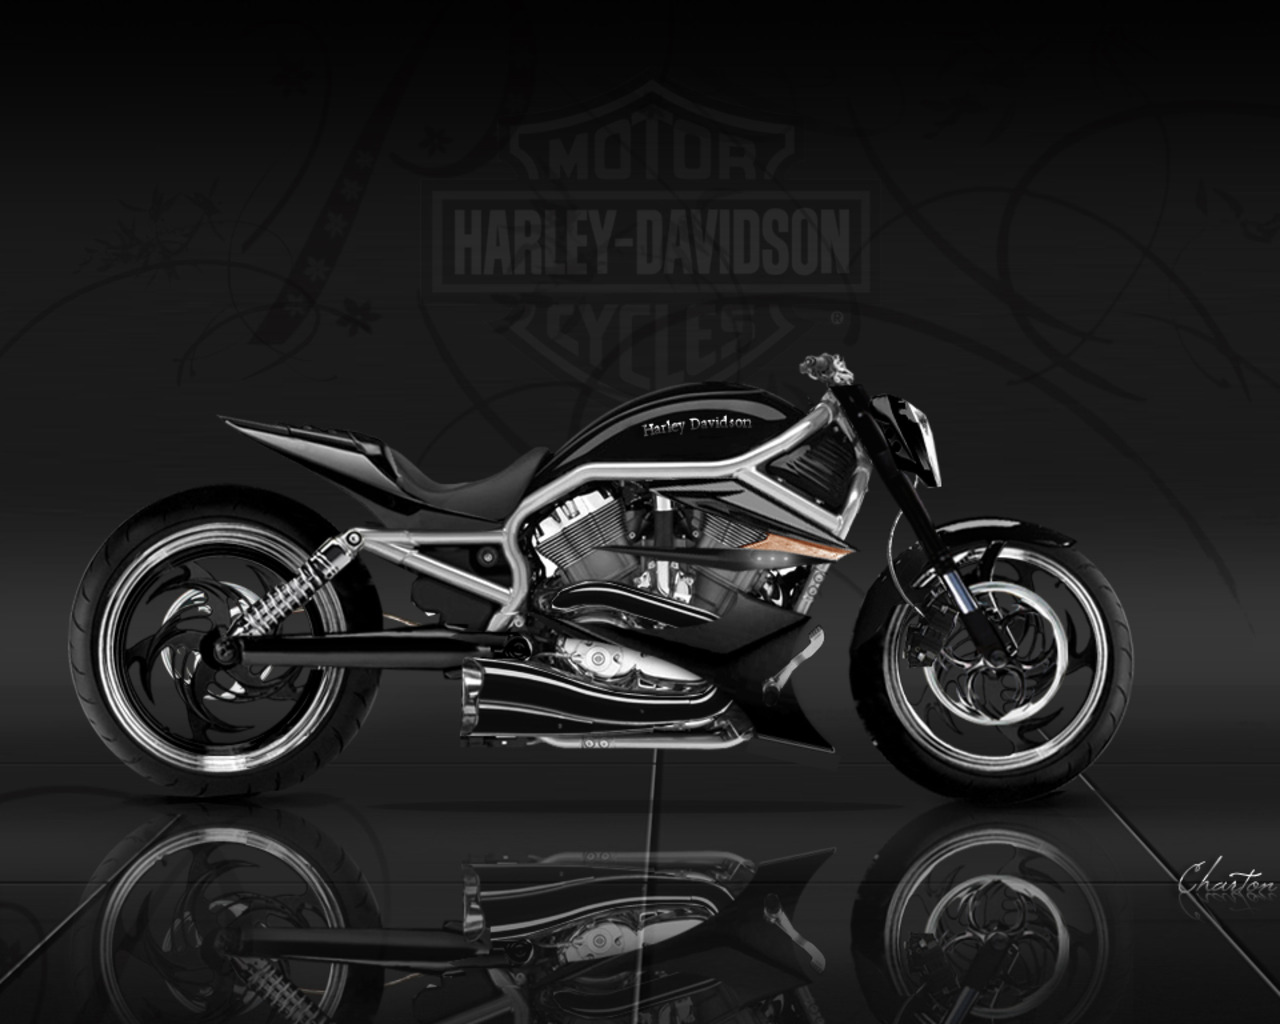 Harley Davidson Motorcycles Wallpapers Risen Sources 1280x1024